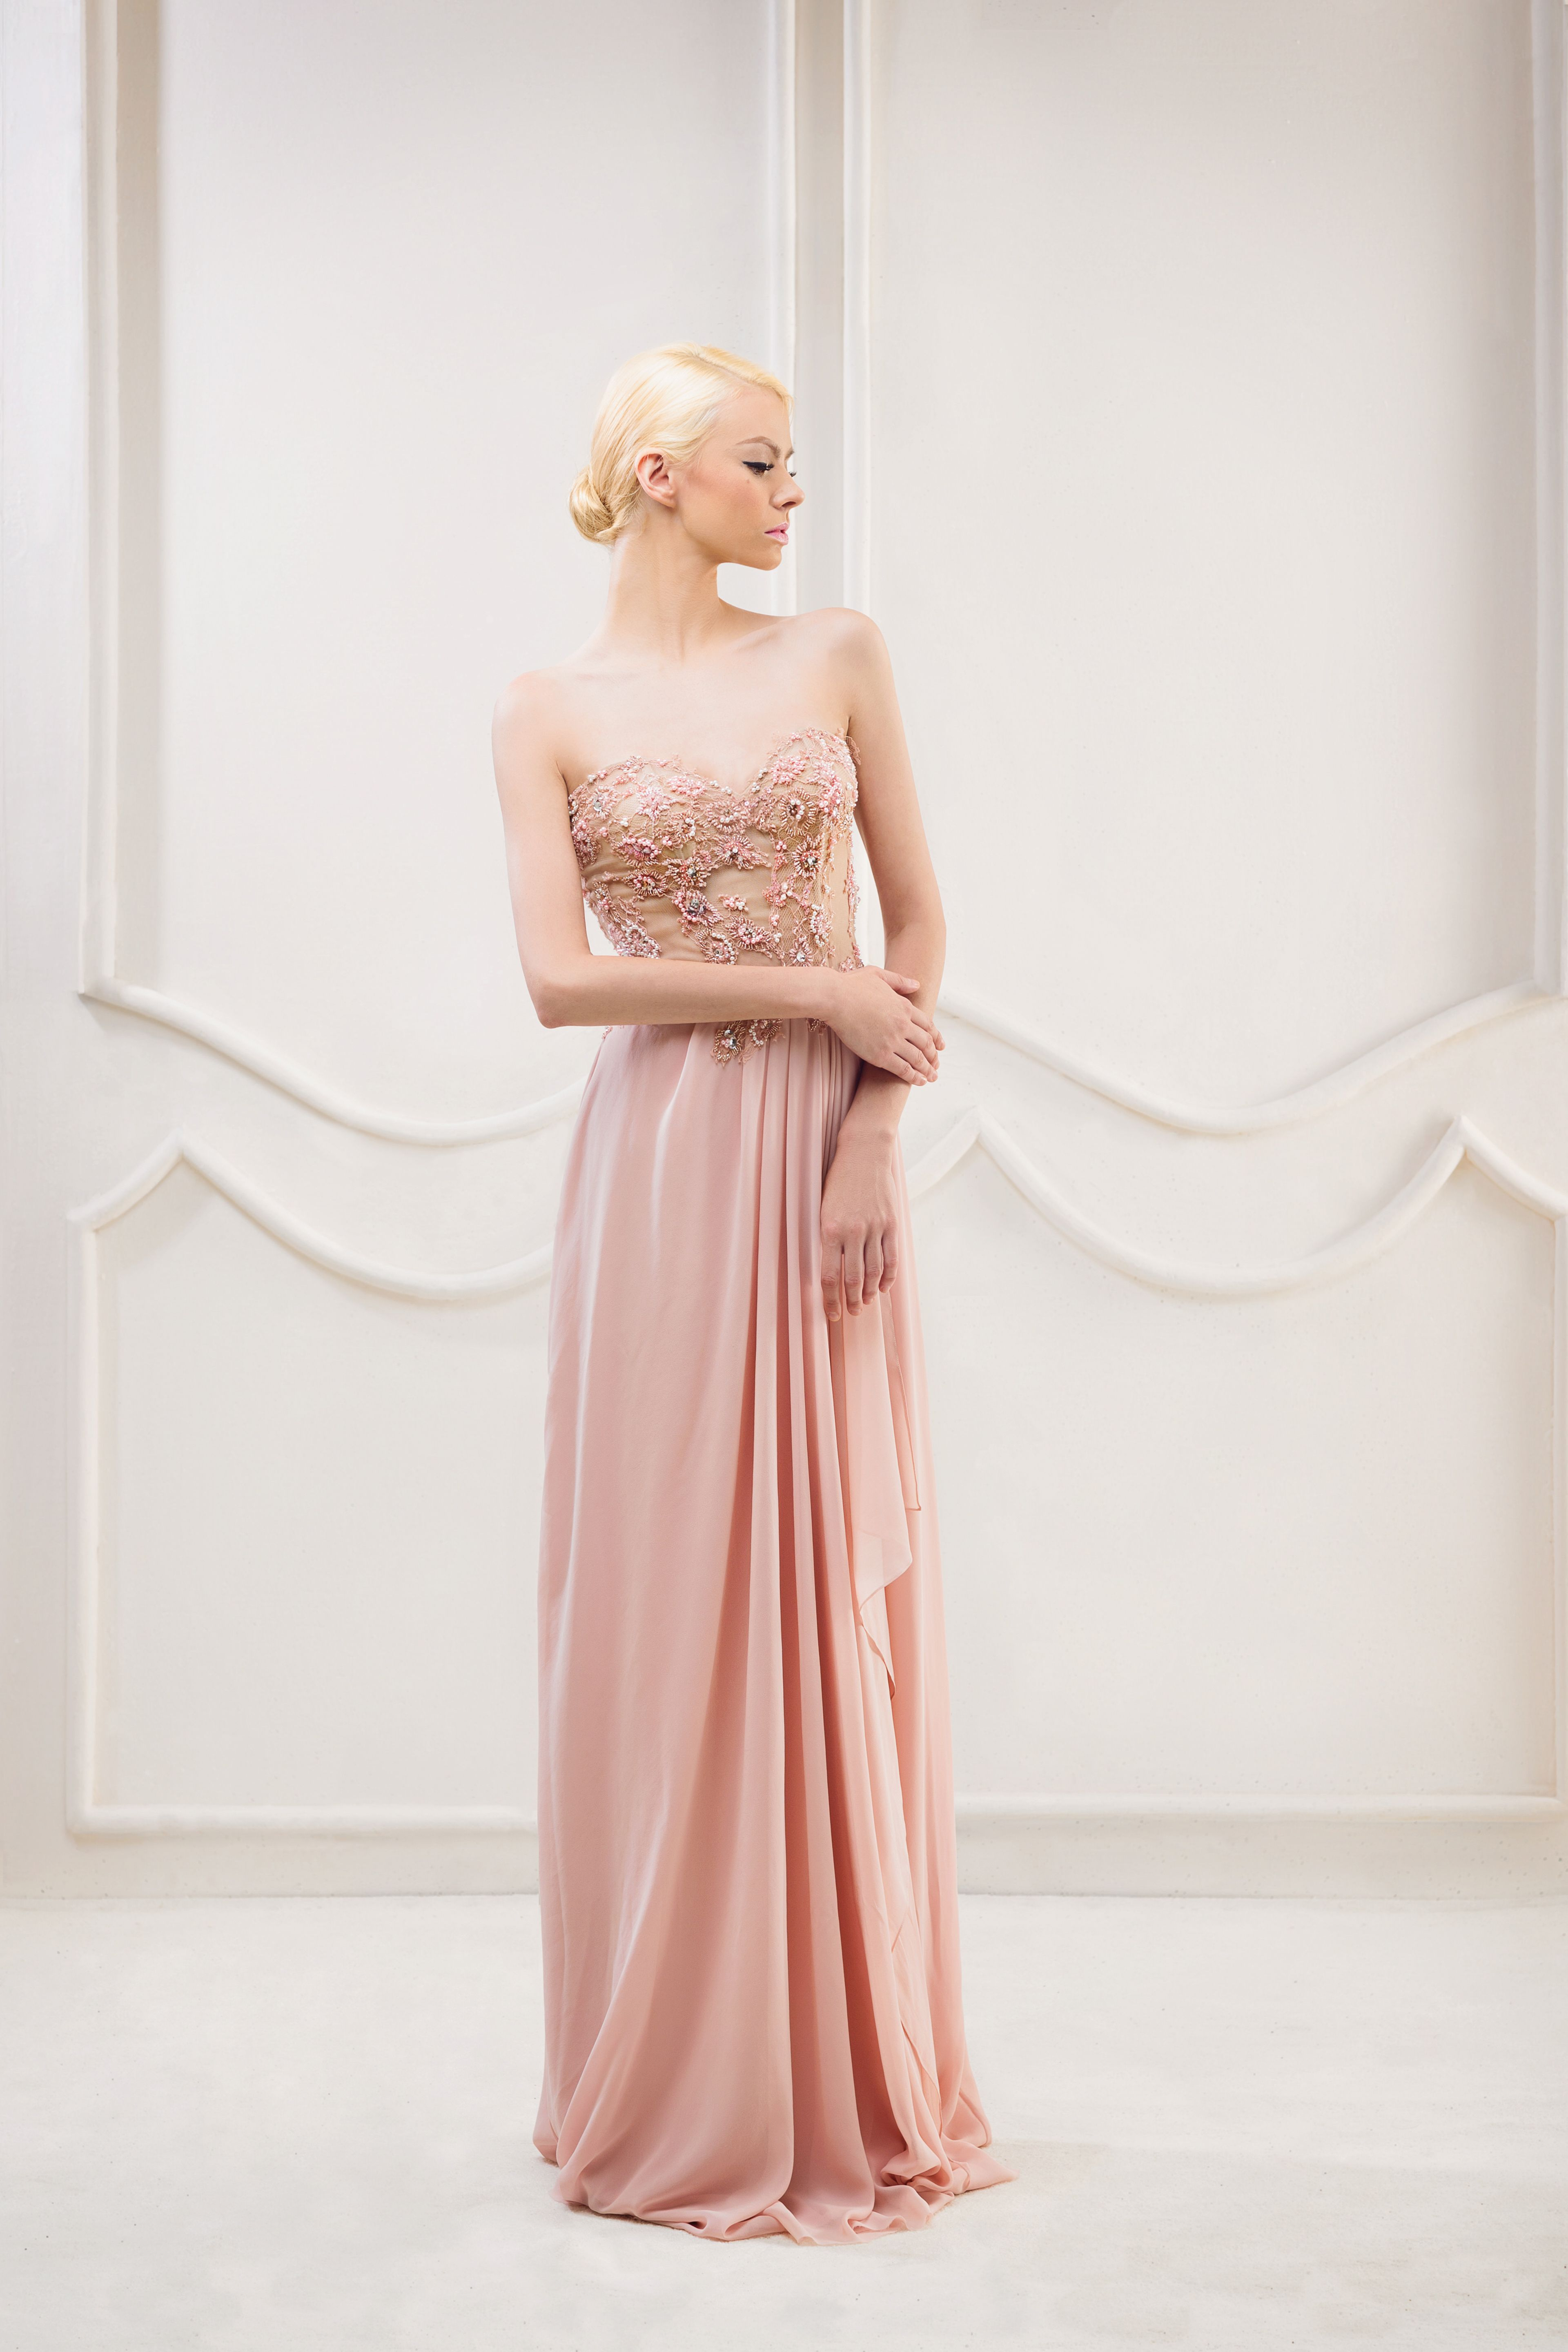 Lovely Elegant Rustic Pink Evening Gown